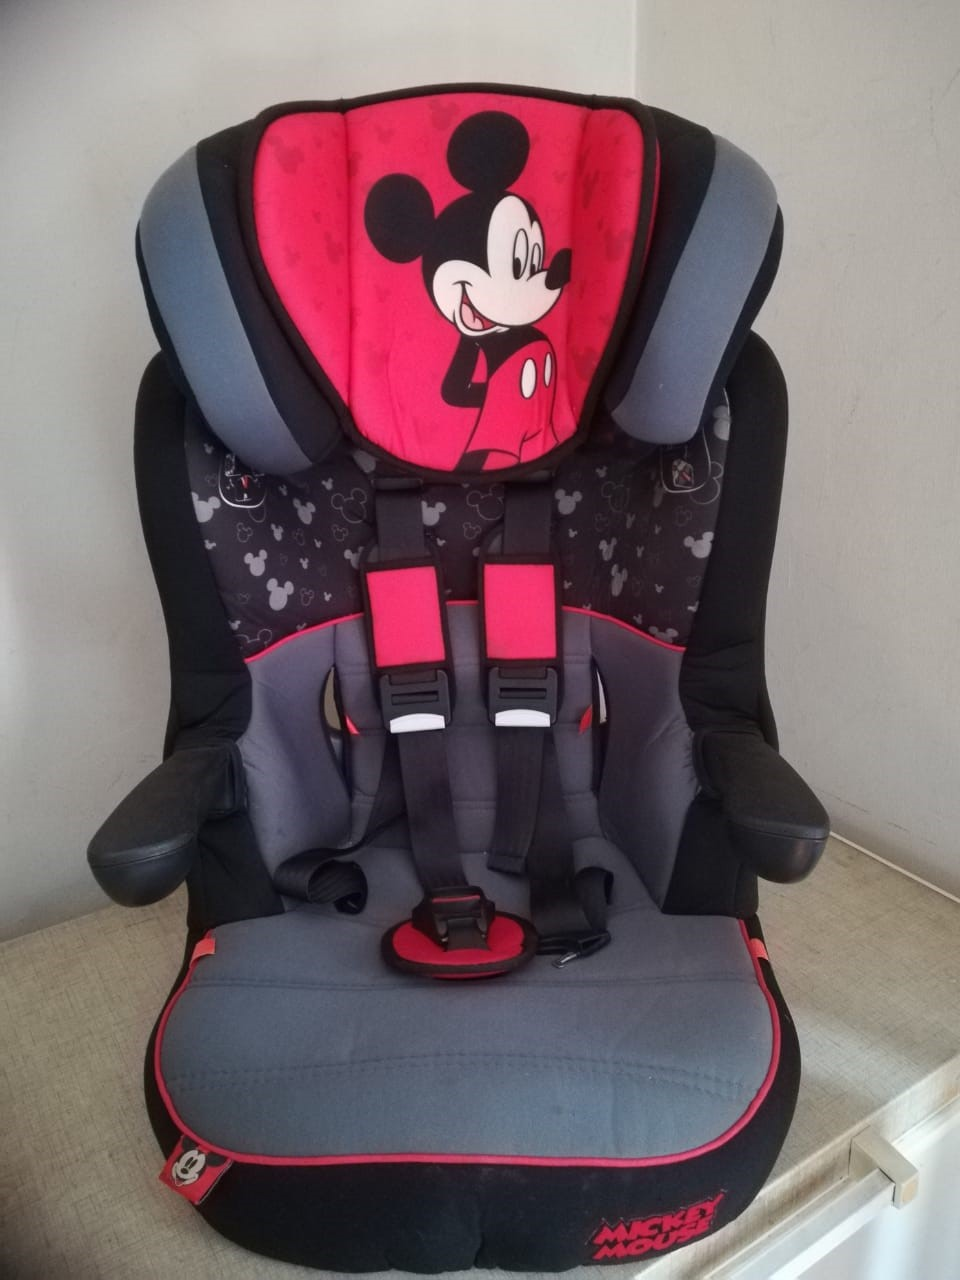 Disney Mickey Mouse IMAX SP Car Seat